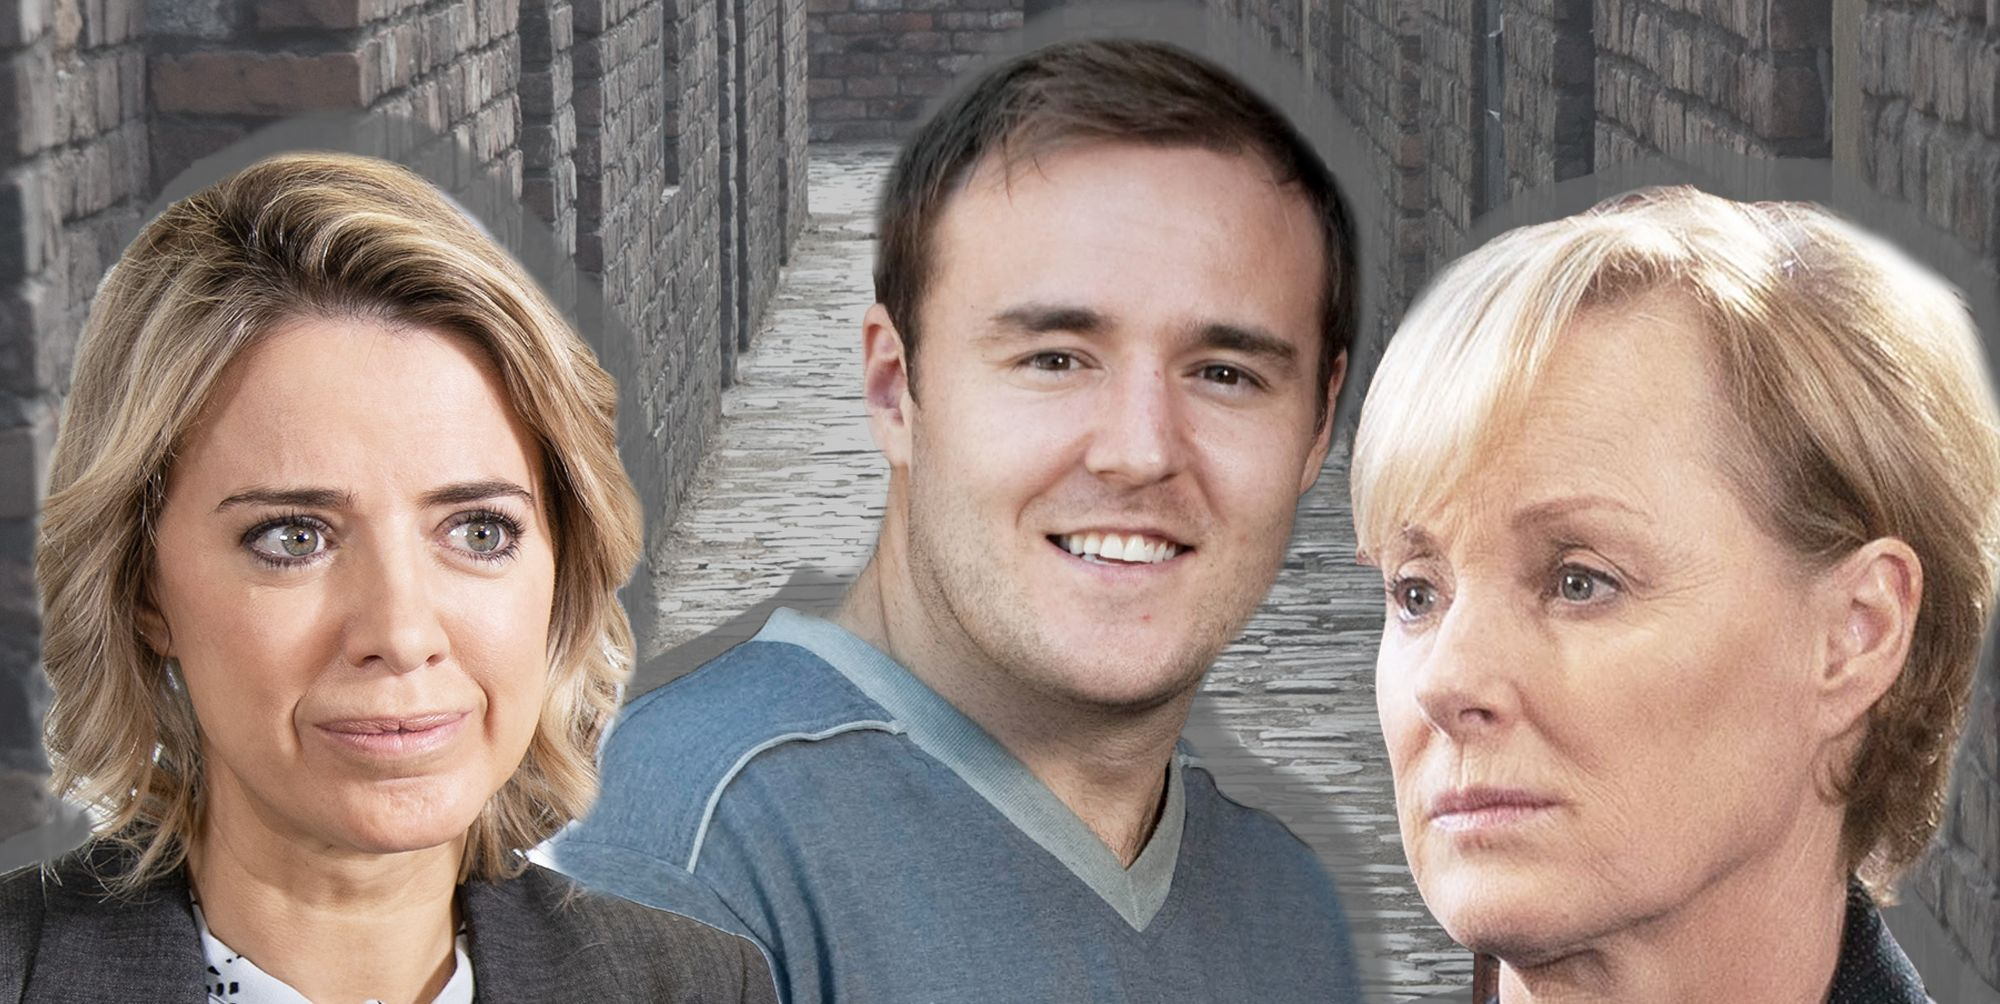 Coronation Street Sally Metcalfe, Tyrone Dobbs and Abi Franklin the possible victims in the Underworld roof collapse tragedy